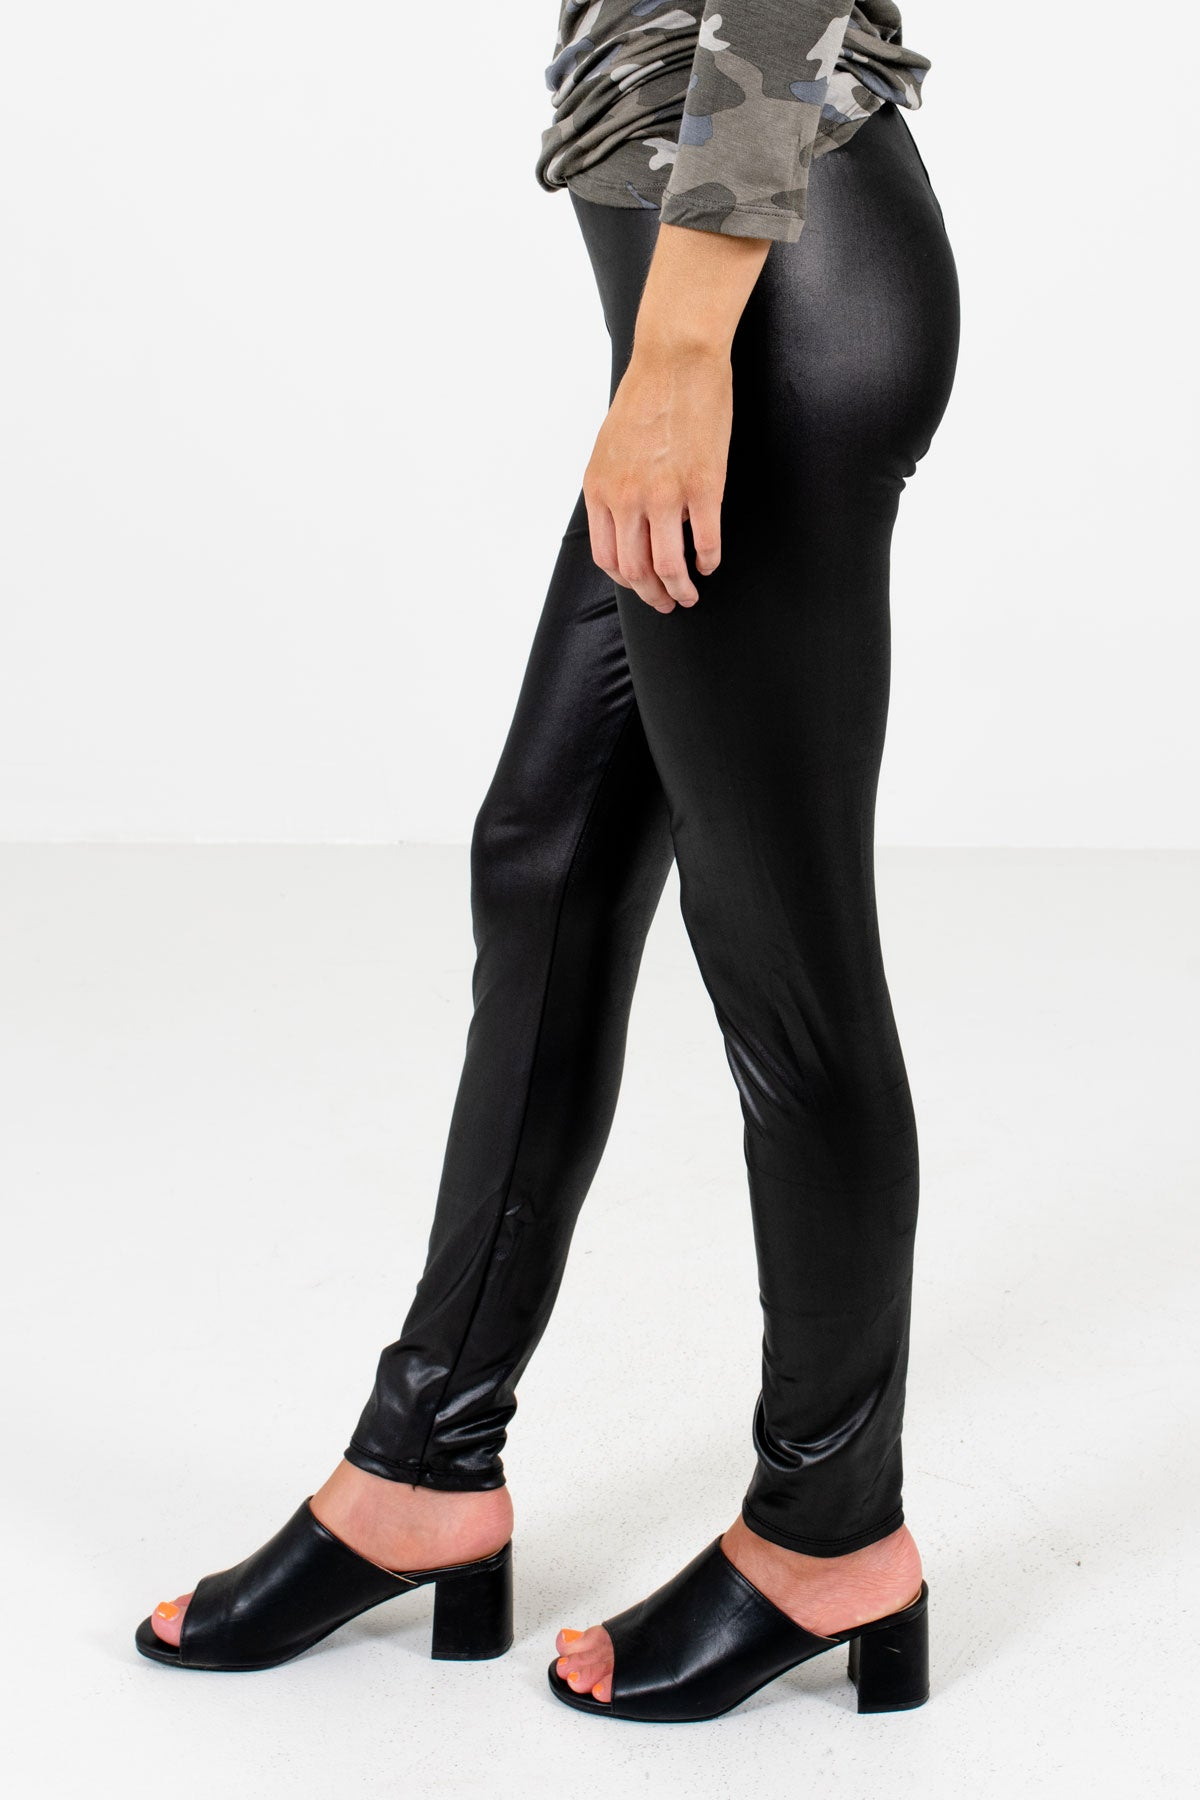 Black High-Quality Stretchy Material Boutique Leggings for Women